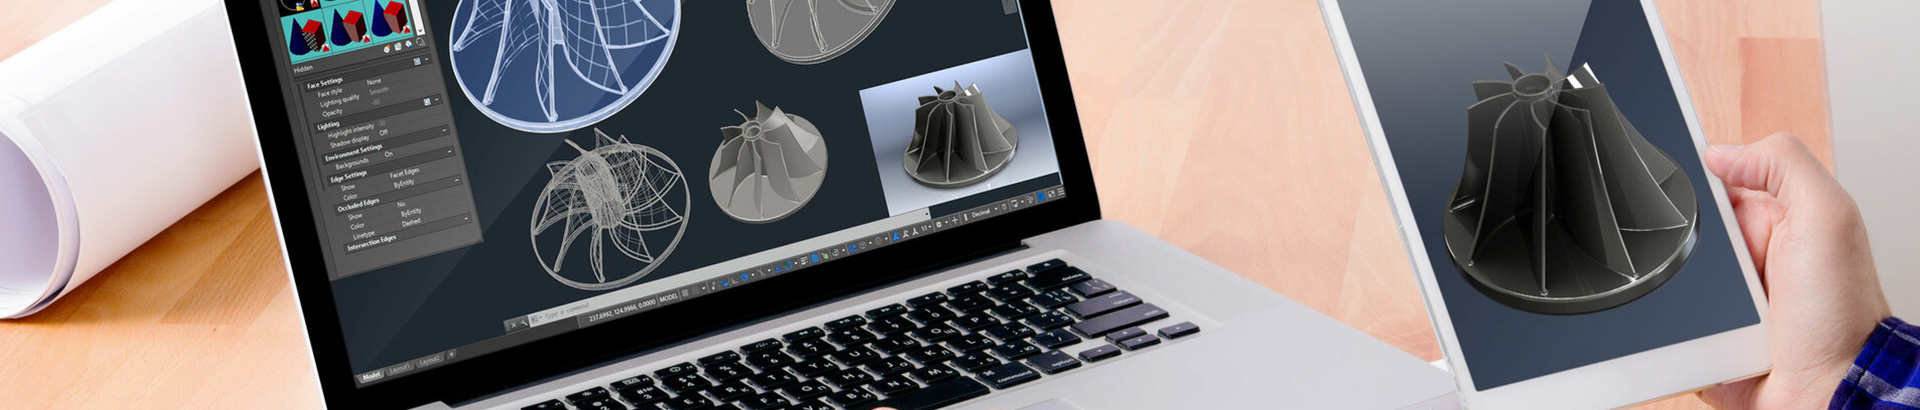 What Is Selective Laser Sintering 3D Printing?